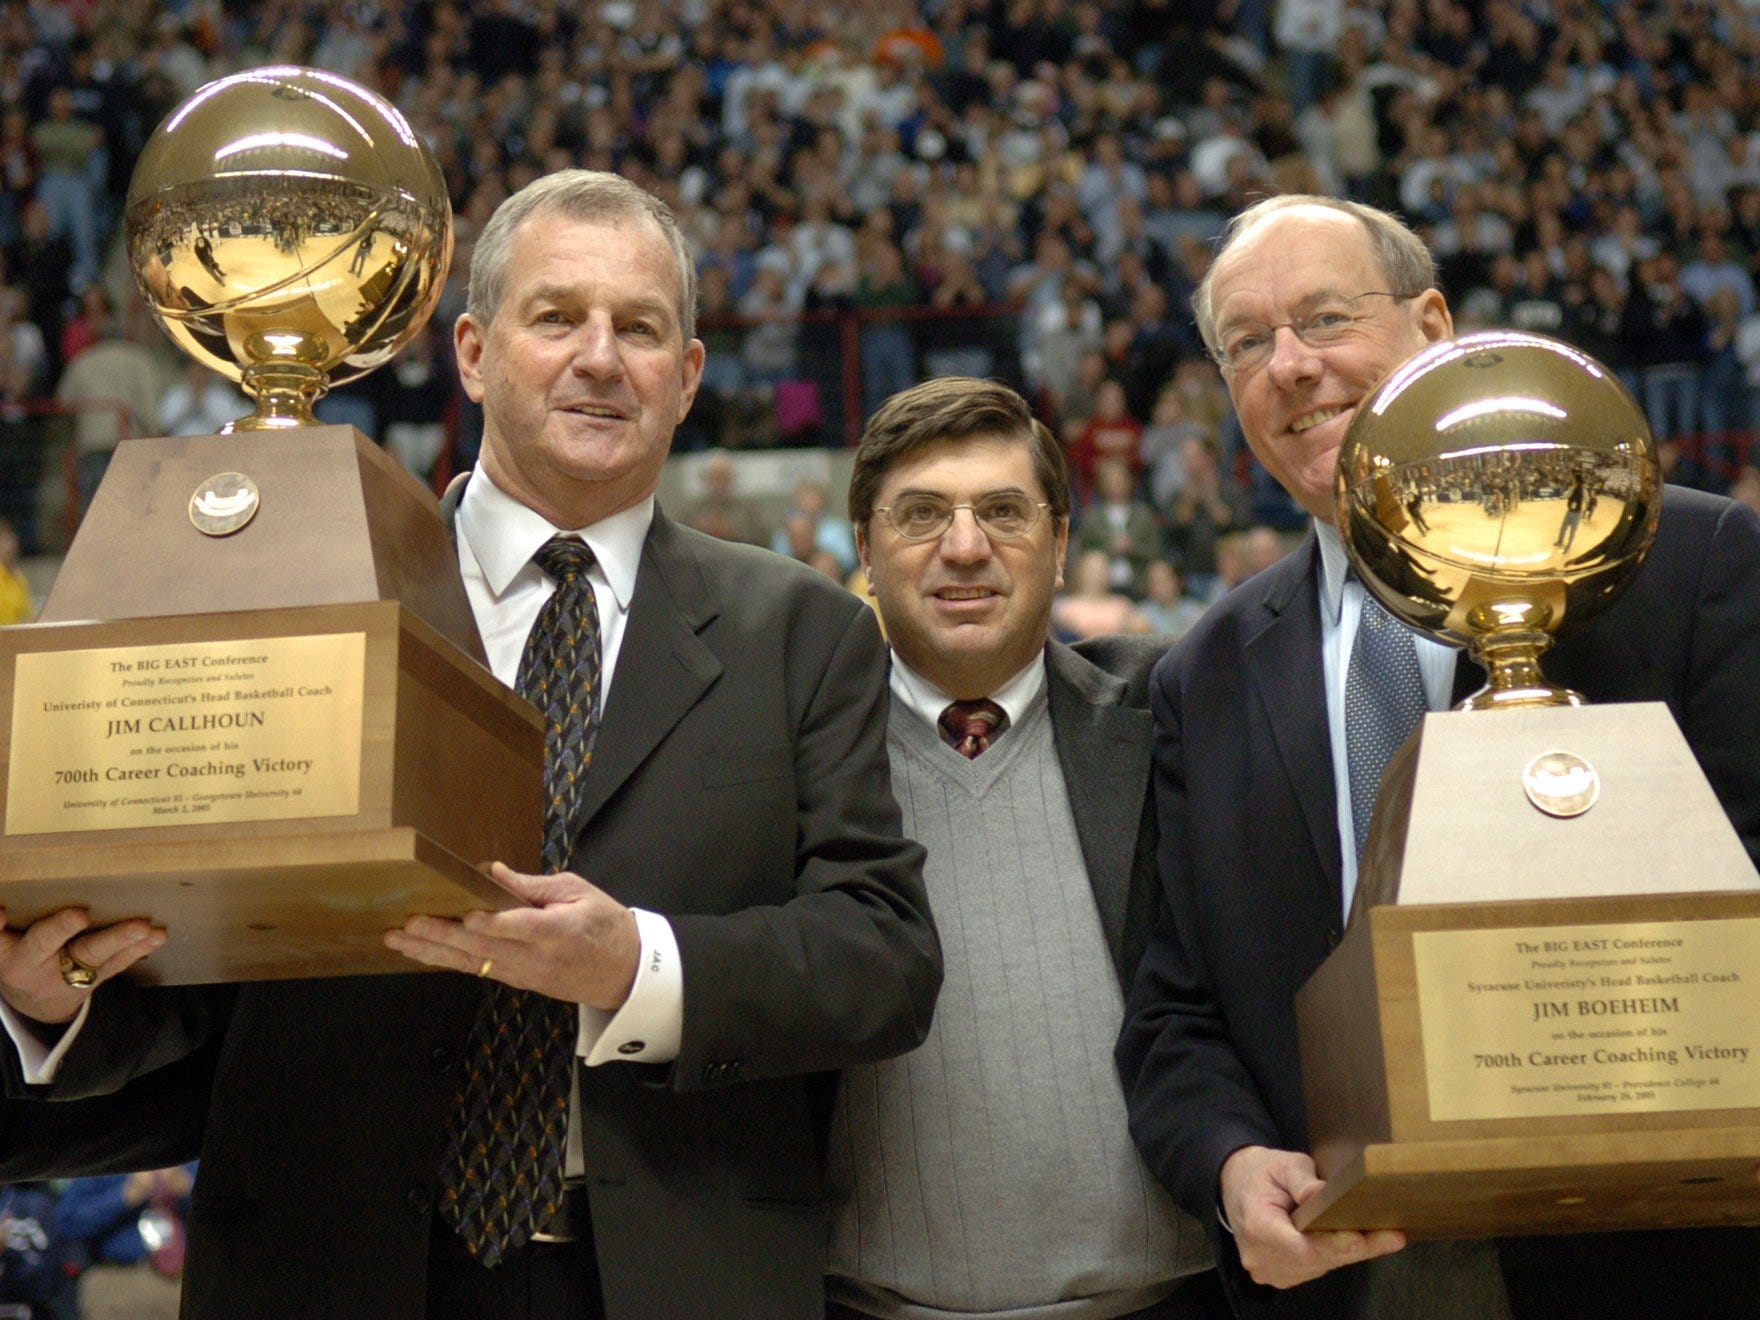 Connecticut coach Jim Calhoun, left, and Syracuse coach Jim Boeheim, flank Big East Commissioner Mike Tranghese after they were presented with their trophies for coaches with 700 wins, before the start of a game in Storrs, Conn., in this March 5, 2005 photo.